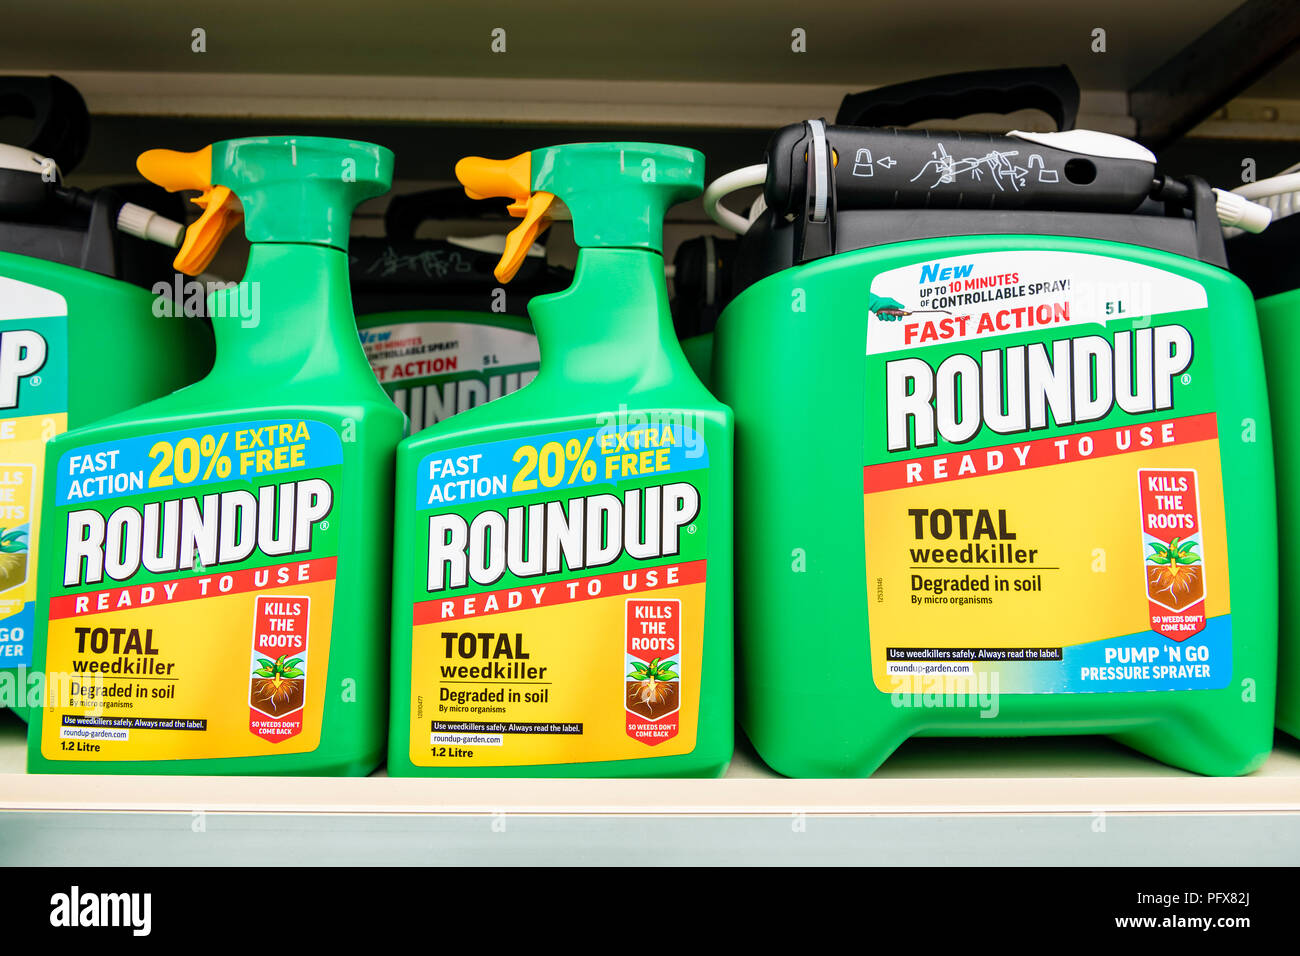 Roundup weedkiller made by Monsanto with Glyphosate, UK. - Stock Image